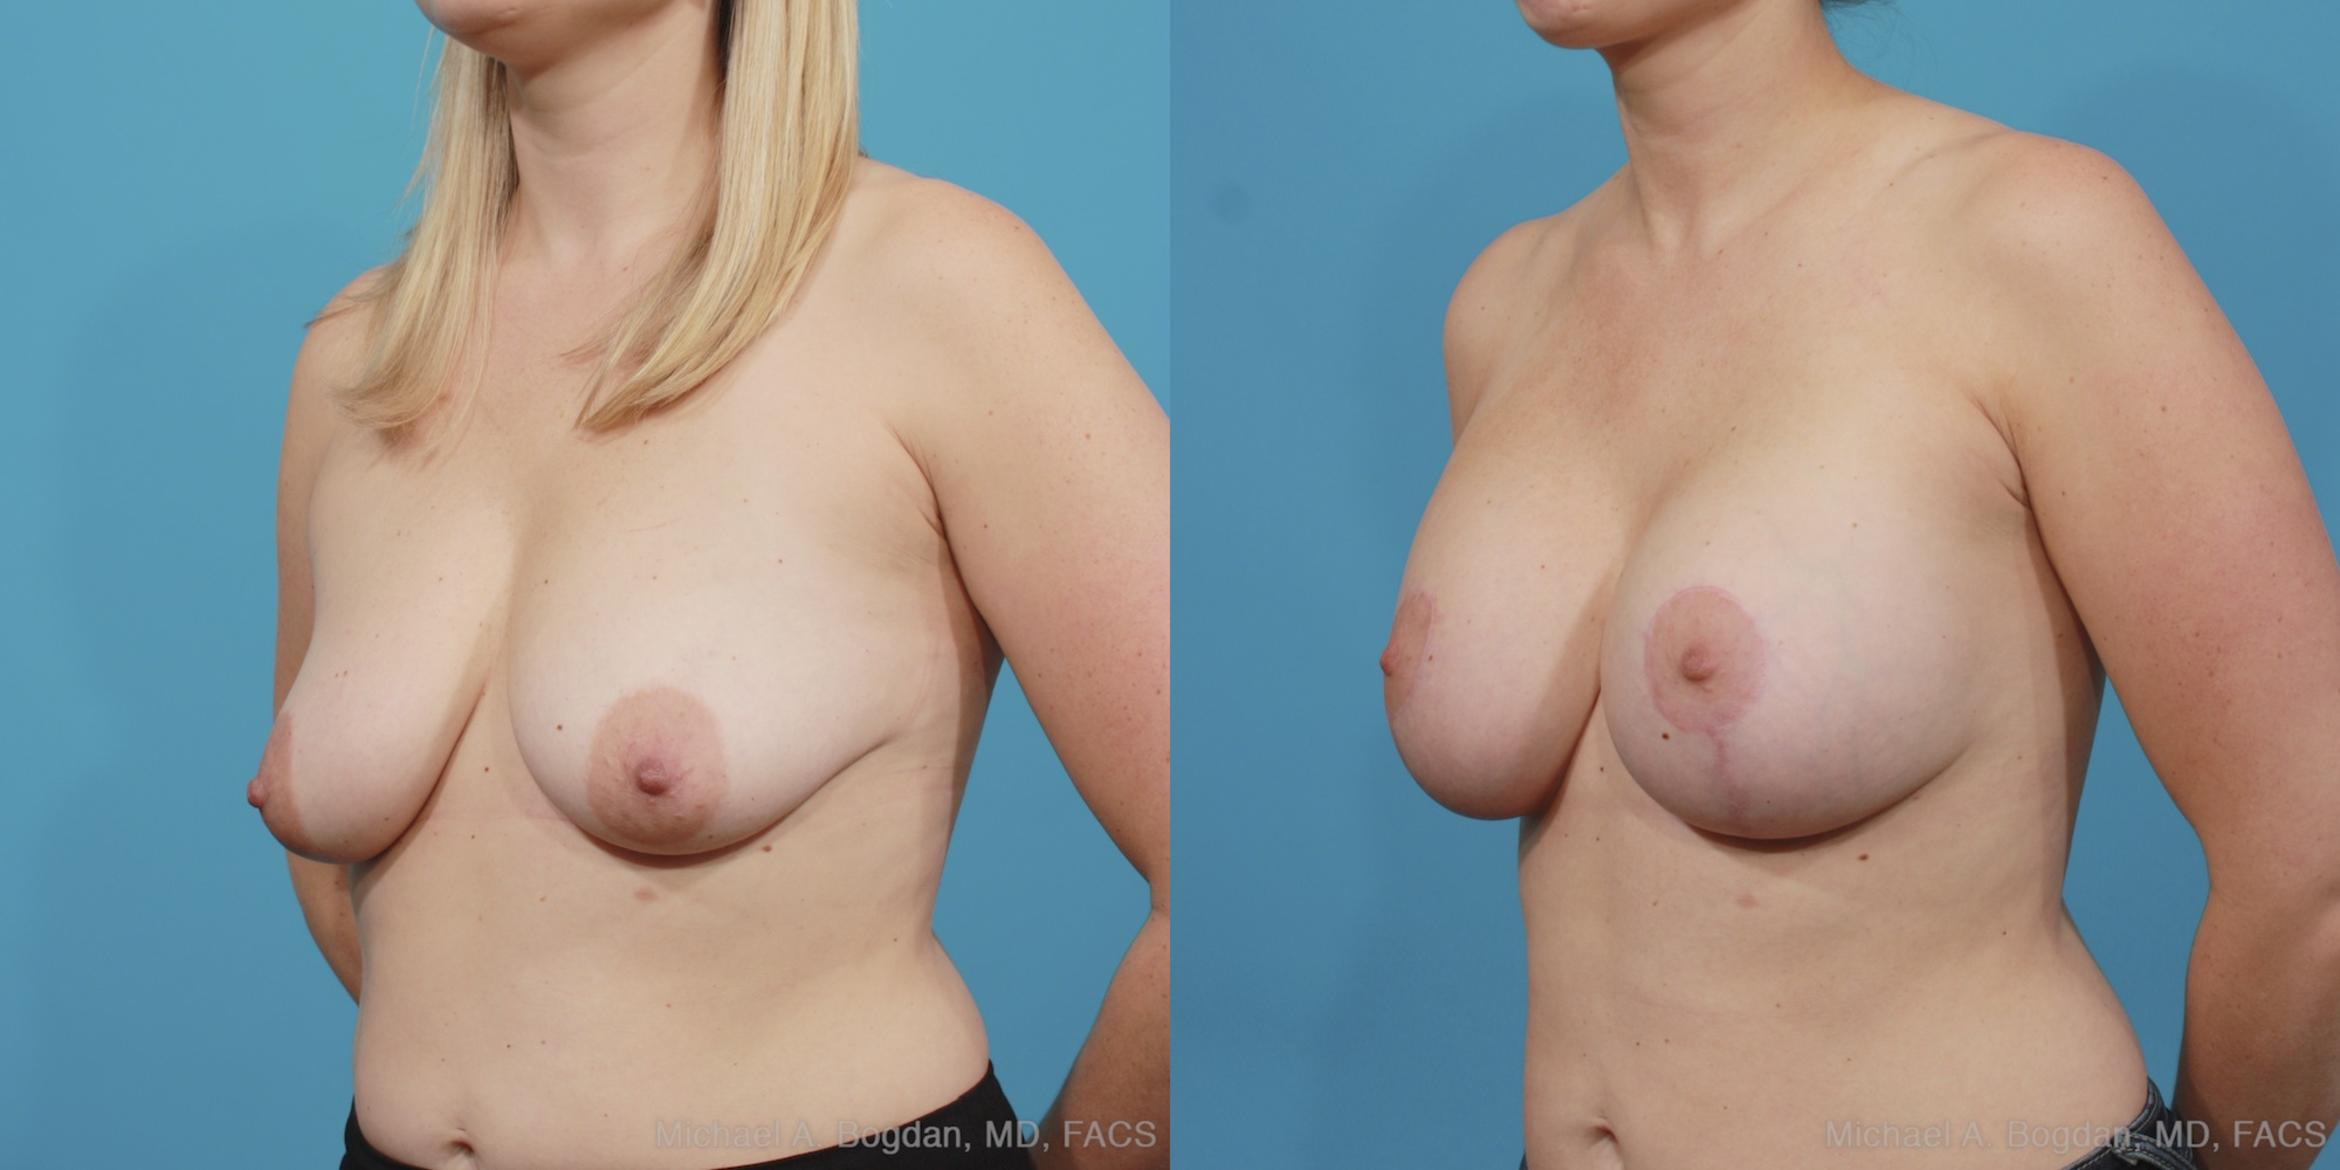 Mastopexy & Augmentation Case 404 Before & After View #3 | Fort Worth & Frisco, Texas | Michael A. Bogdan, MD, FACS